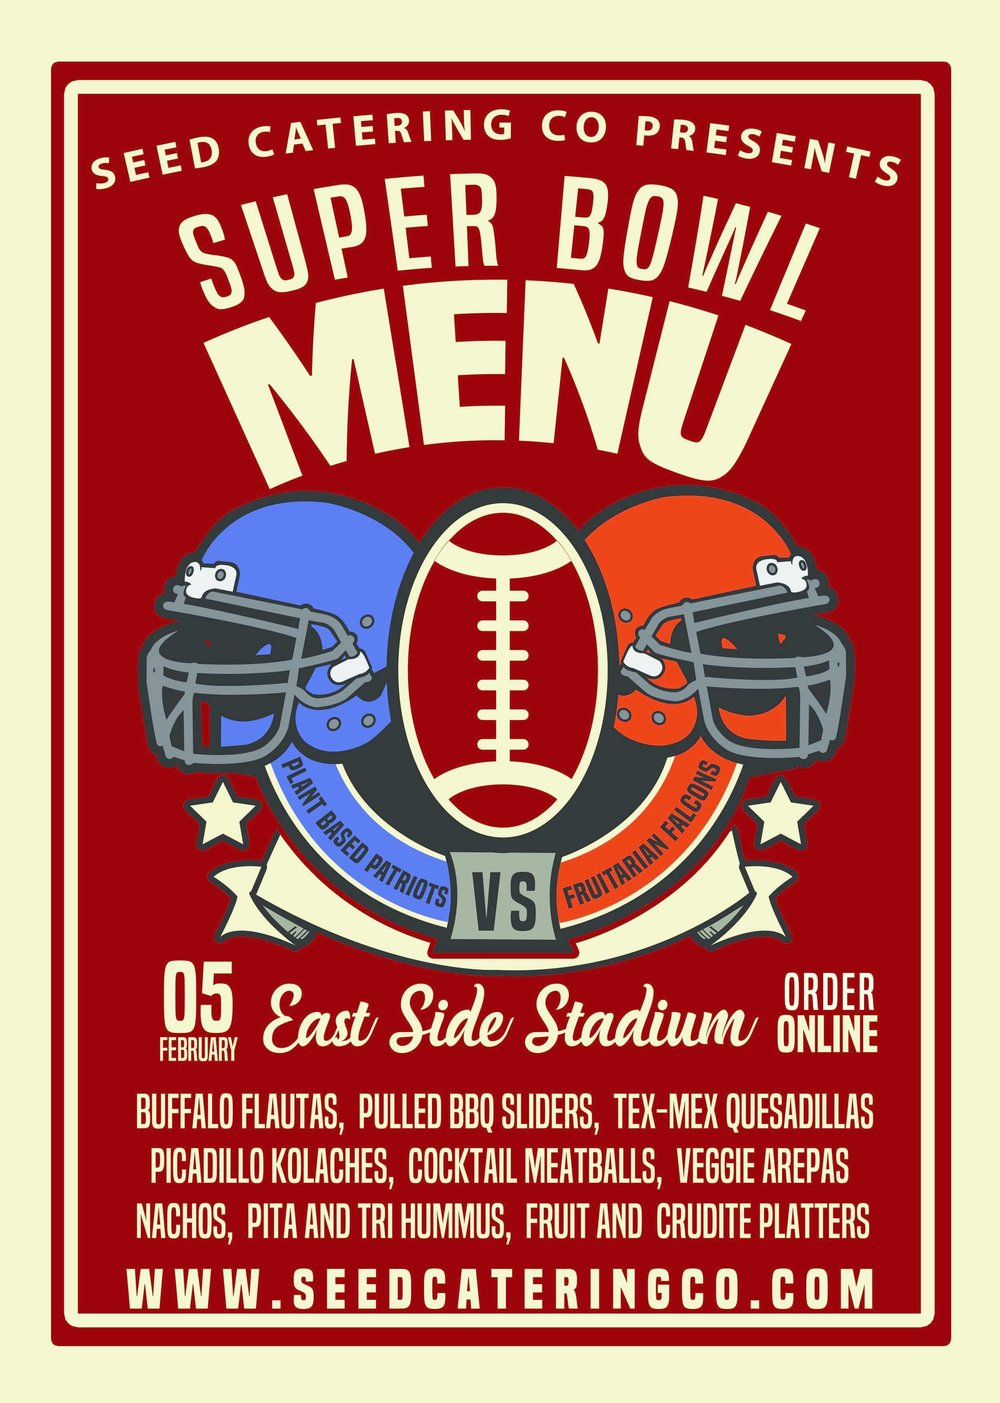 Super Bowl - Seed Catering Co.